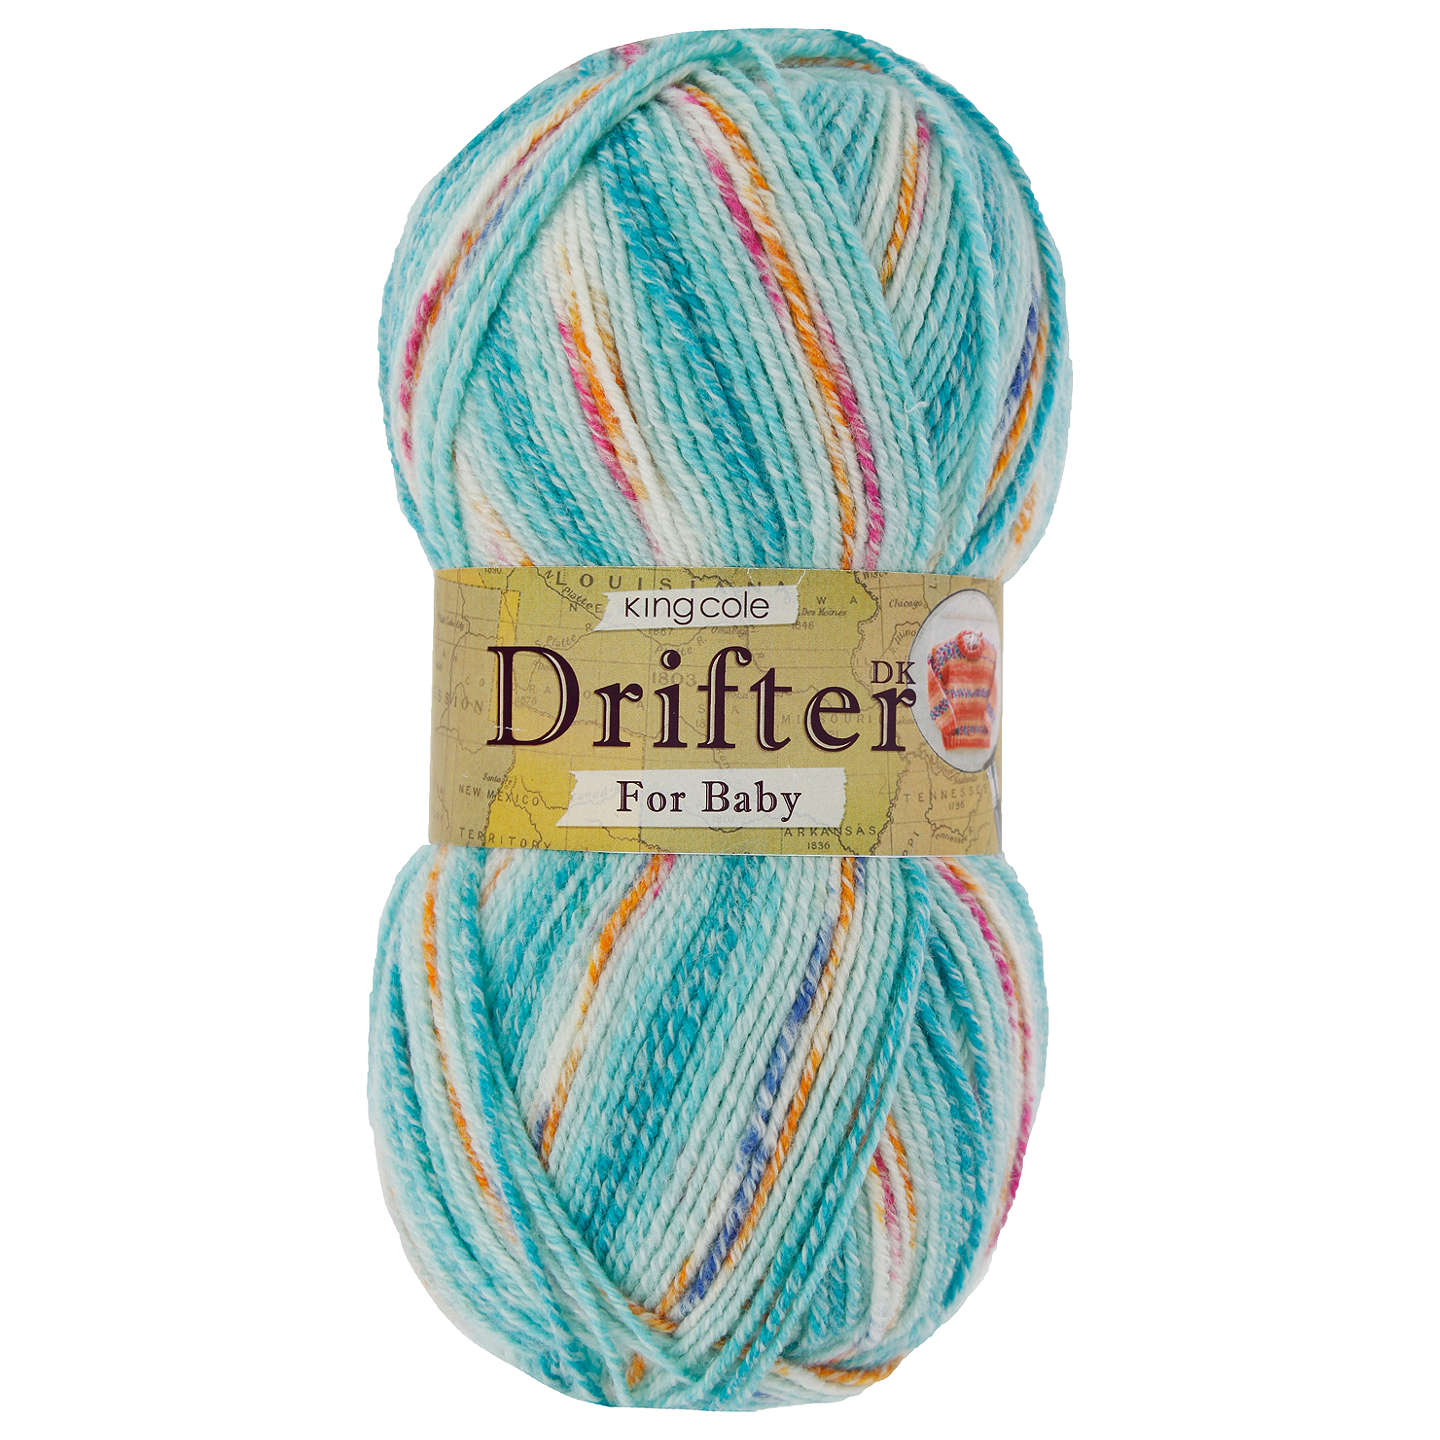 BuyKing Cole Baby Drifter DK Yarn, 100g, Kingfisher Online at johnlewis.com